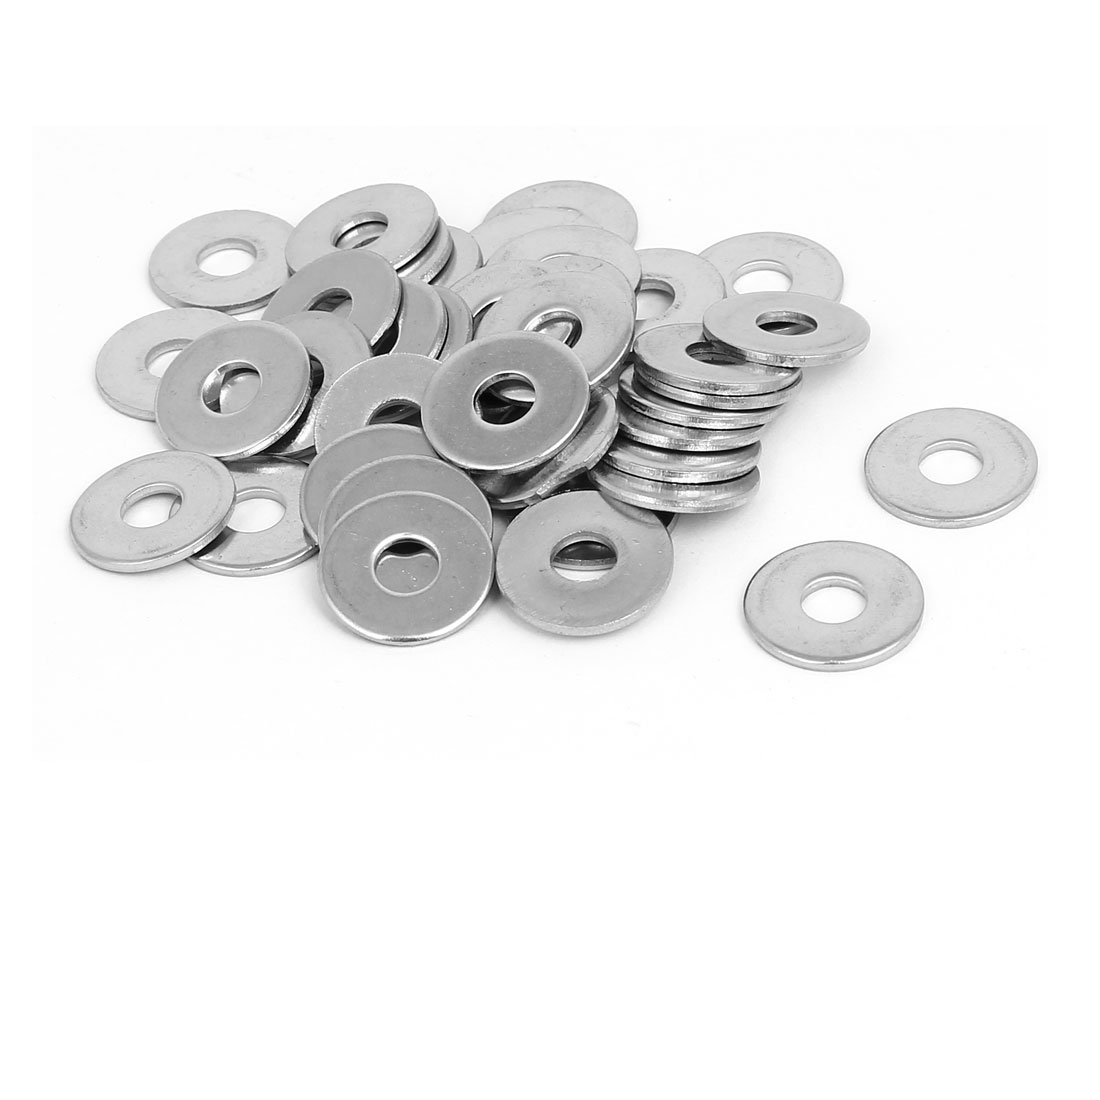 M6x18mmx1.5mm 316 Stainless Steel Flat Washers Gasket Fastener 40pcs